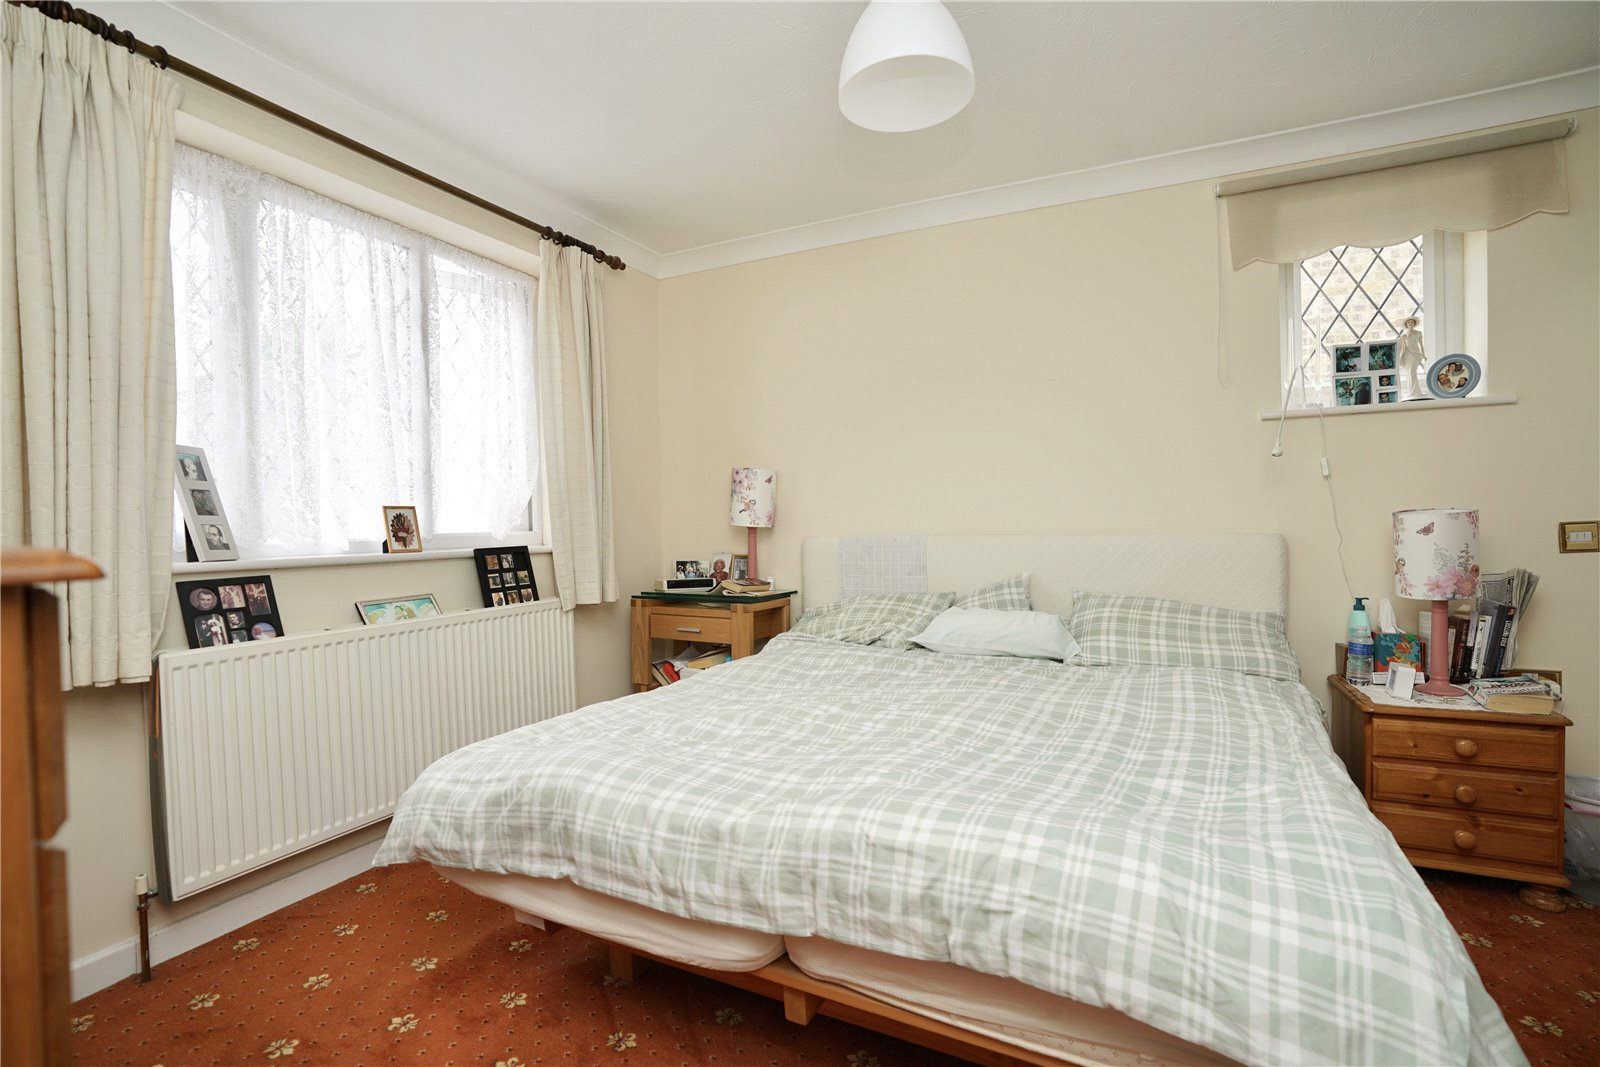 3 bed house for sale in Cunningham Way, Eaton Socon 7